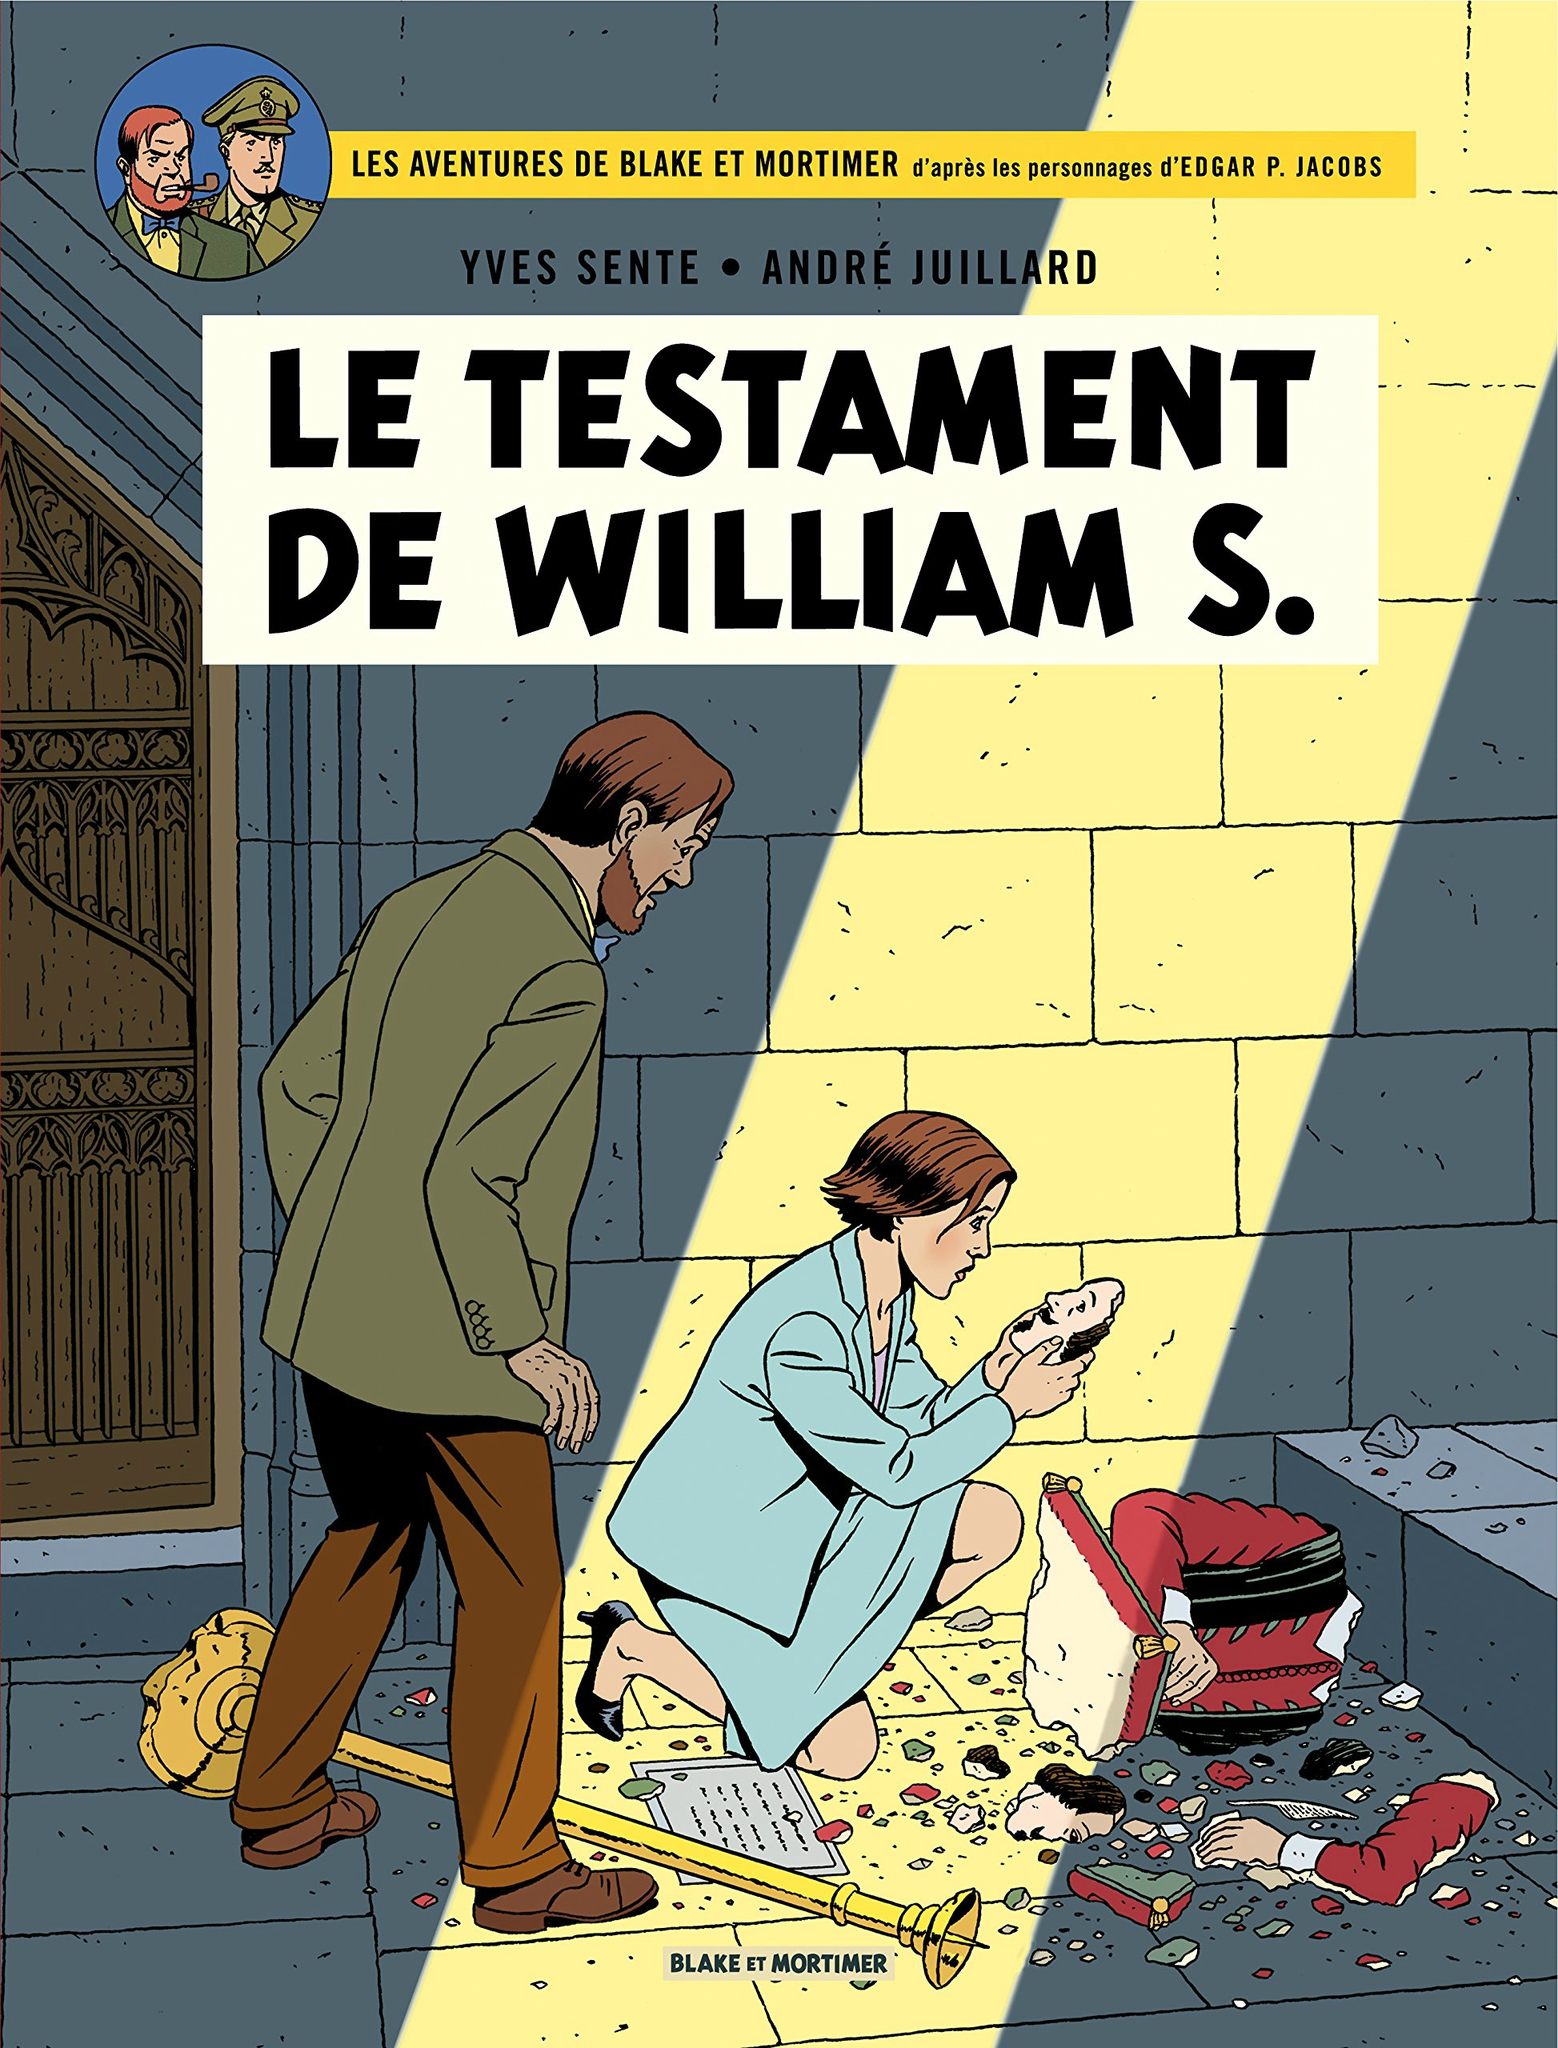 Blake et Mortimer: Le Testament de William S.